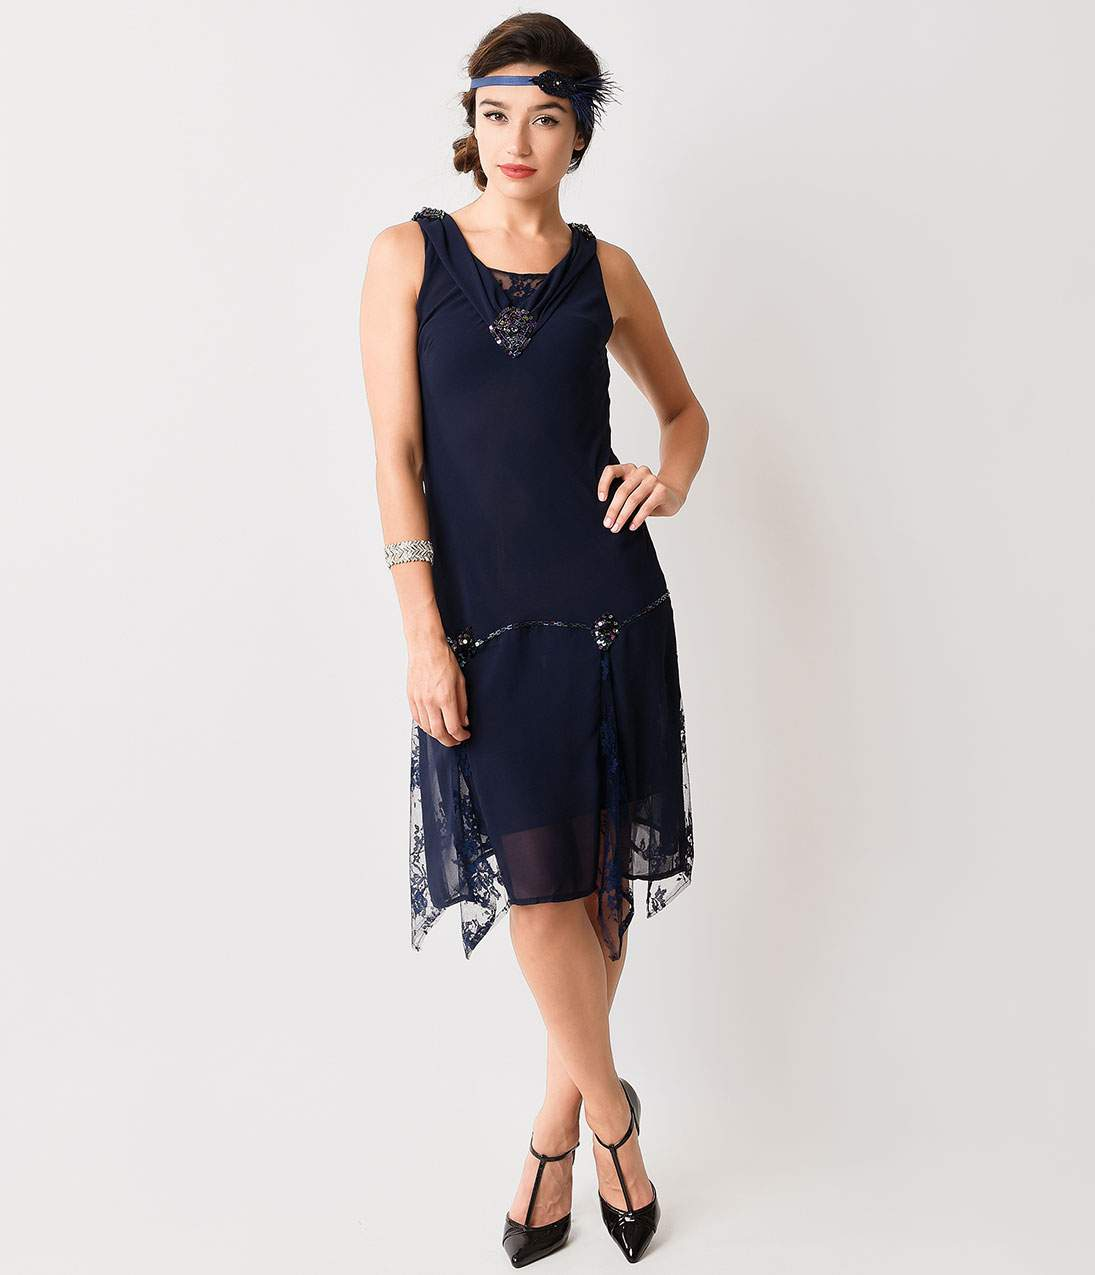 1920s Evening Dresses & Formal Gowns Unique Vintage Navy Hemingway Flapper Dress $54.00 AT vintagedancer.com